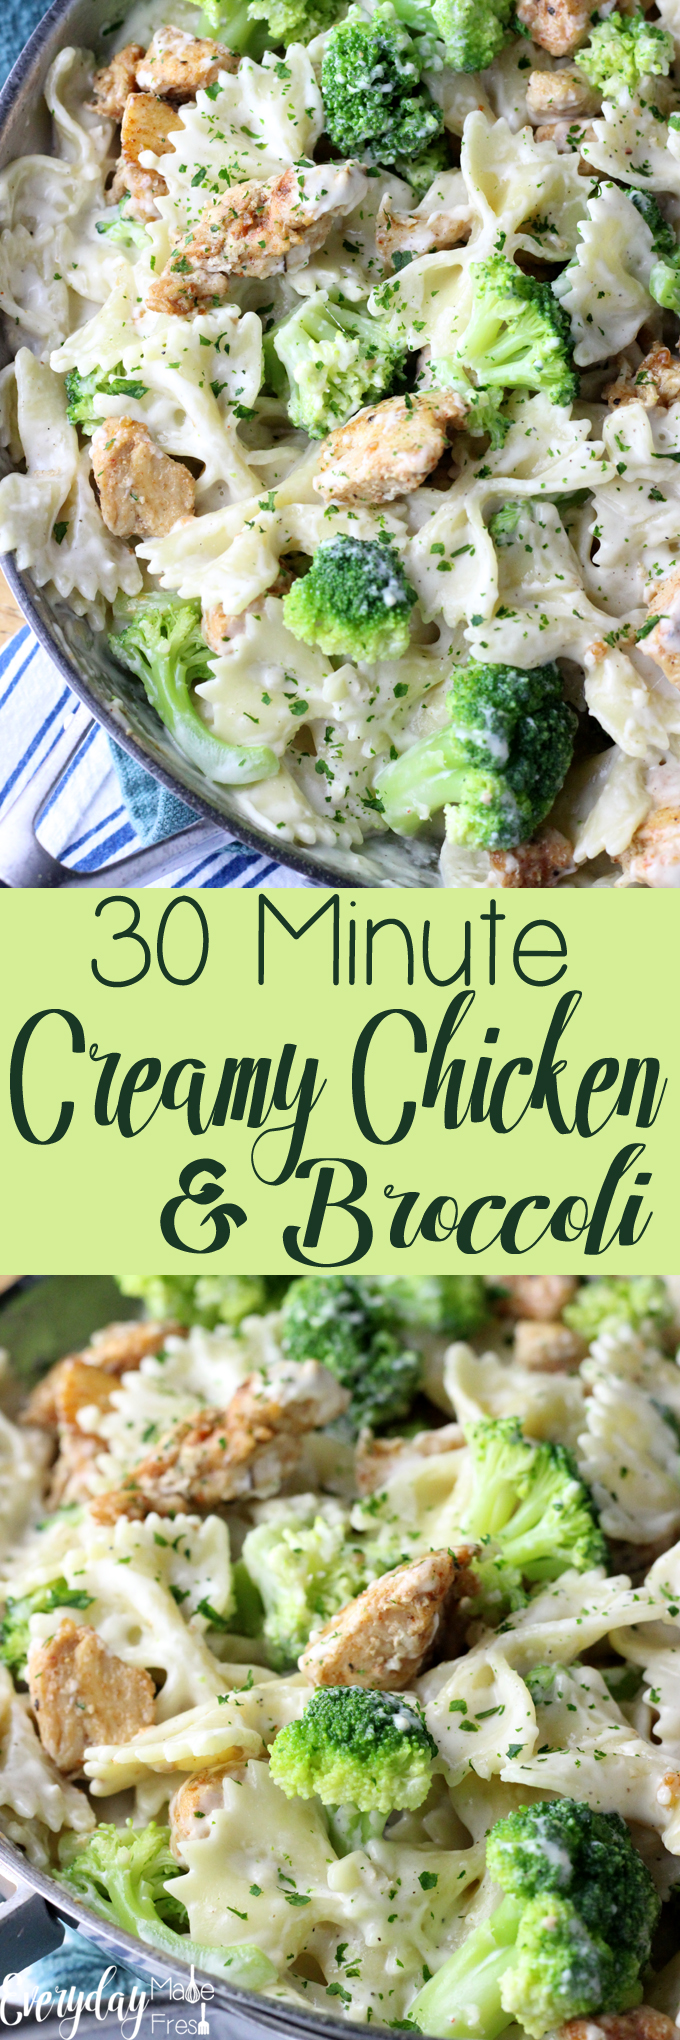 A mozzarella sauce makes this 30 Minute Creamy Chicken & Broccoli a family pleasing weeknight dinner favorite! | EverydayMadeFresh.com